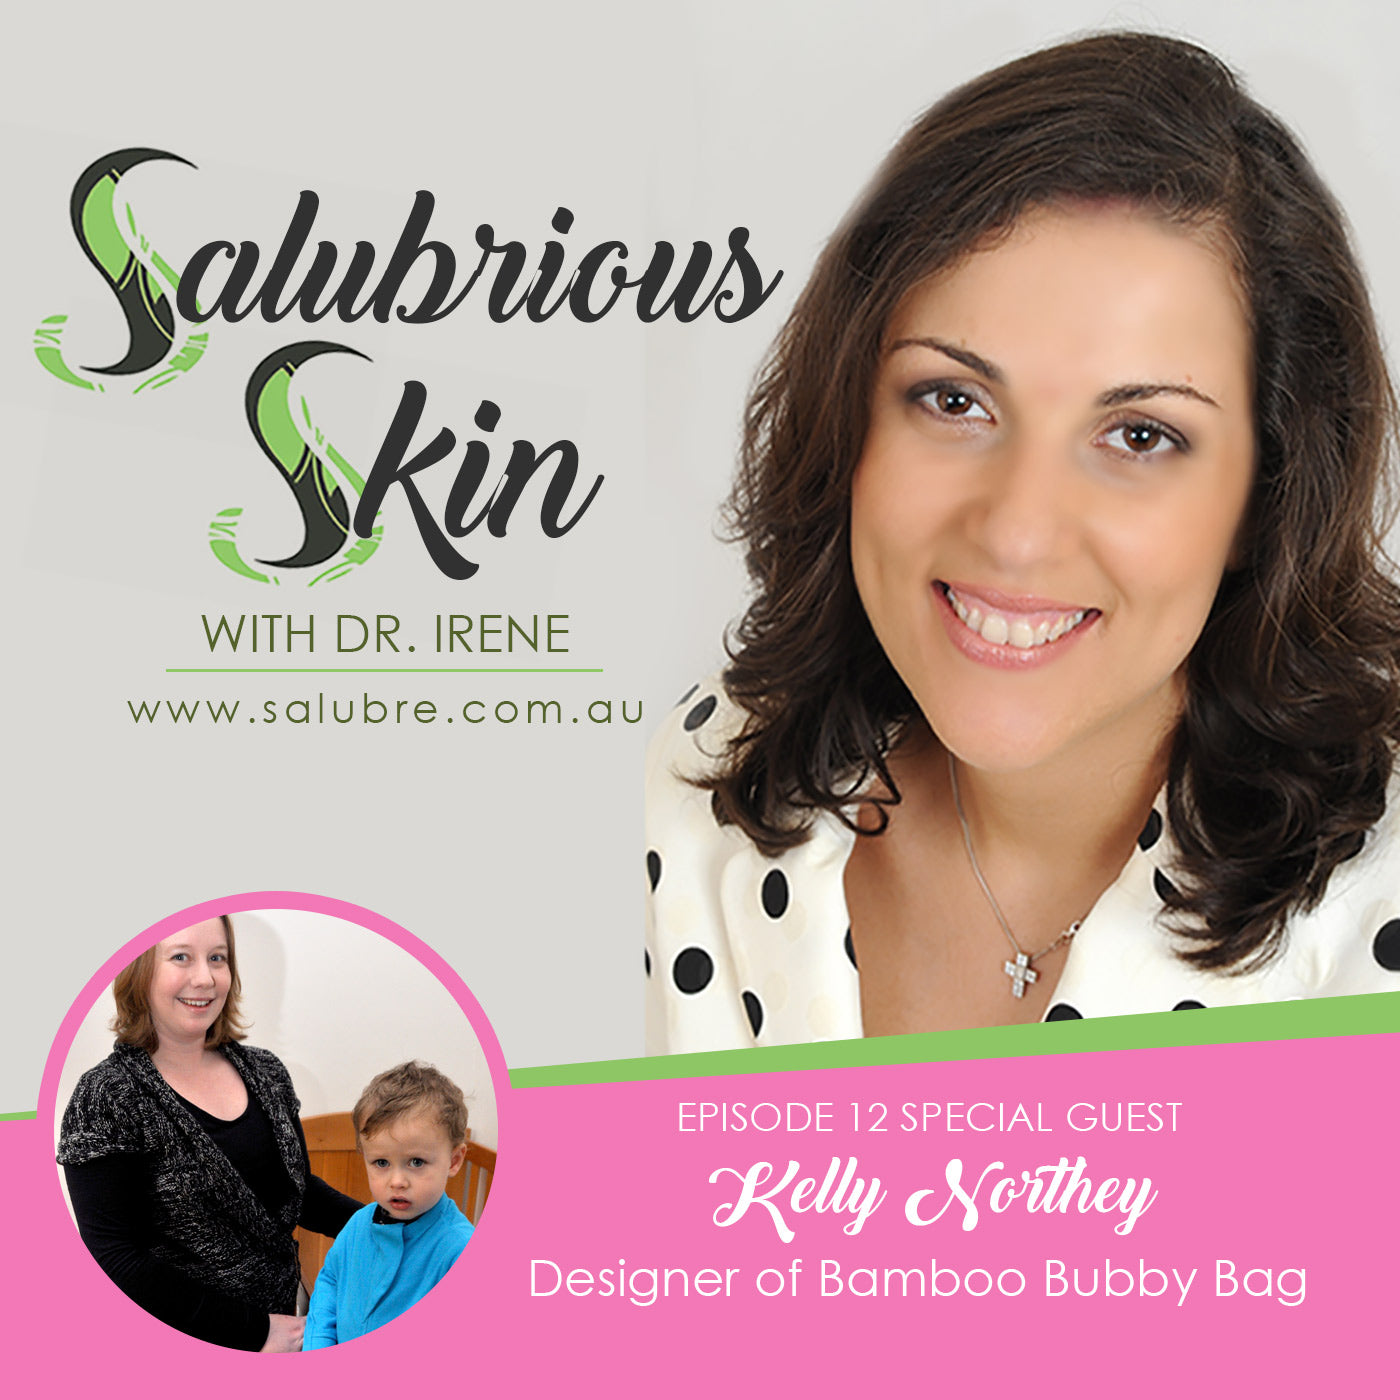 Episode 12: Baby and Child Eczema: Ease the itch and redness with bamboo